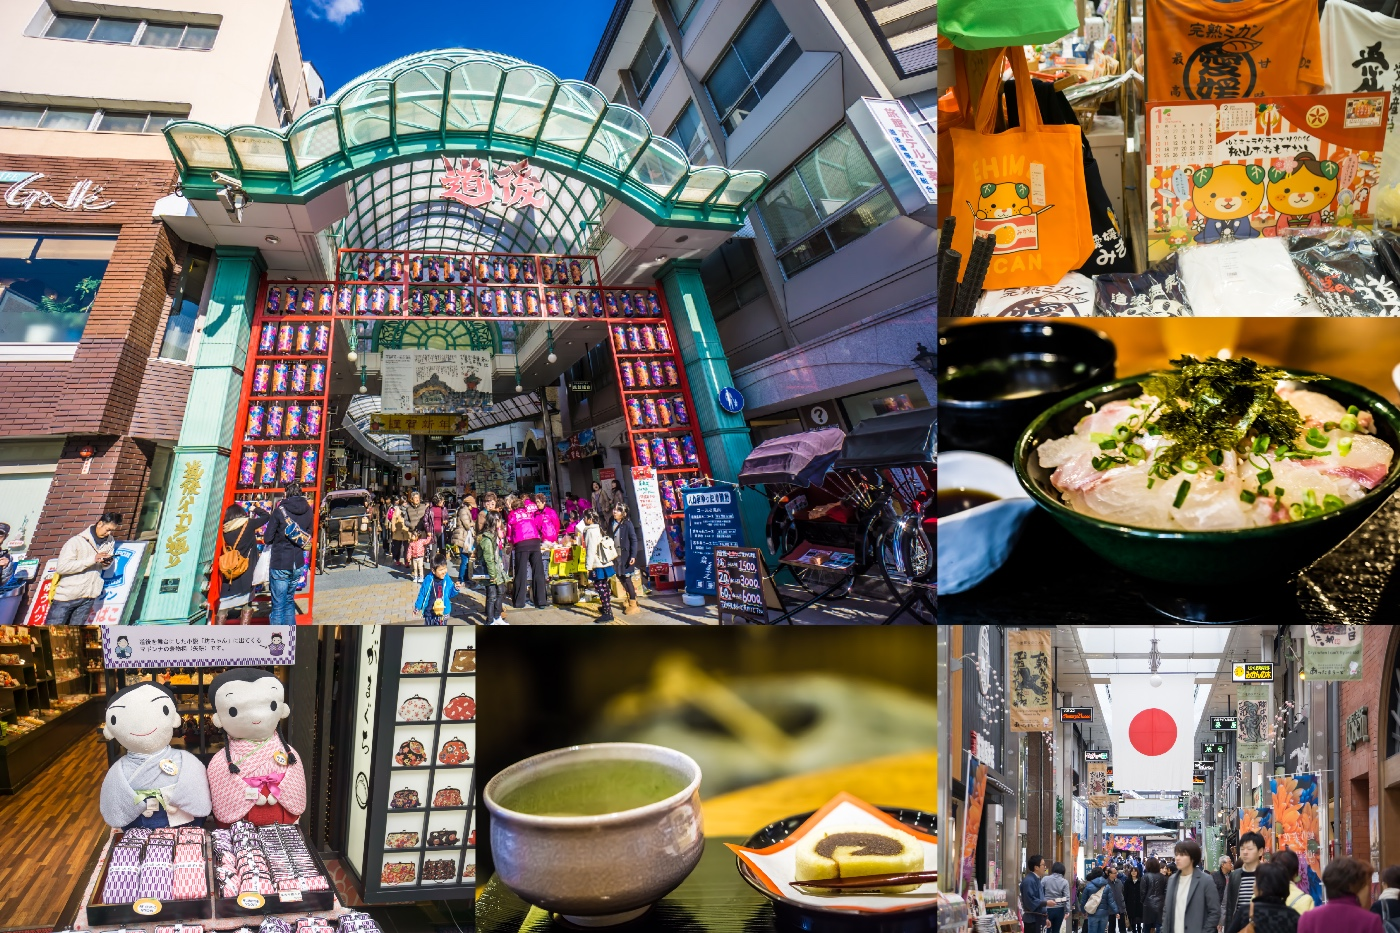 Dogo shopping arcade and Dogo gourmet